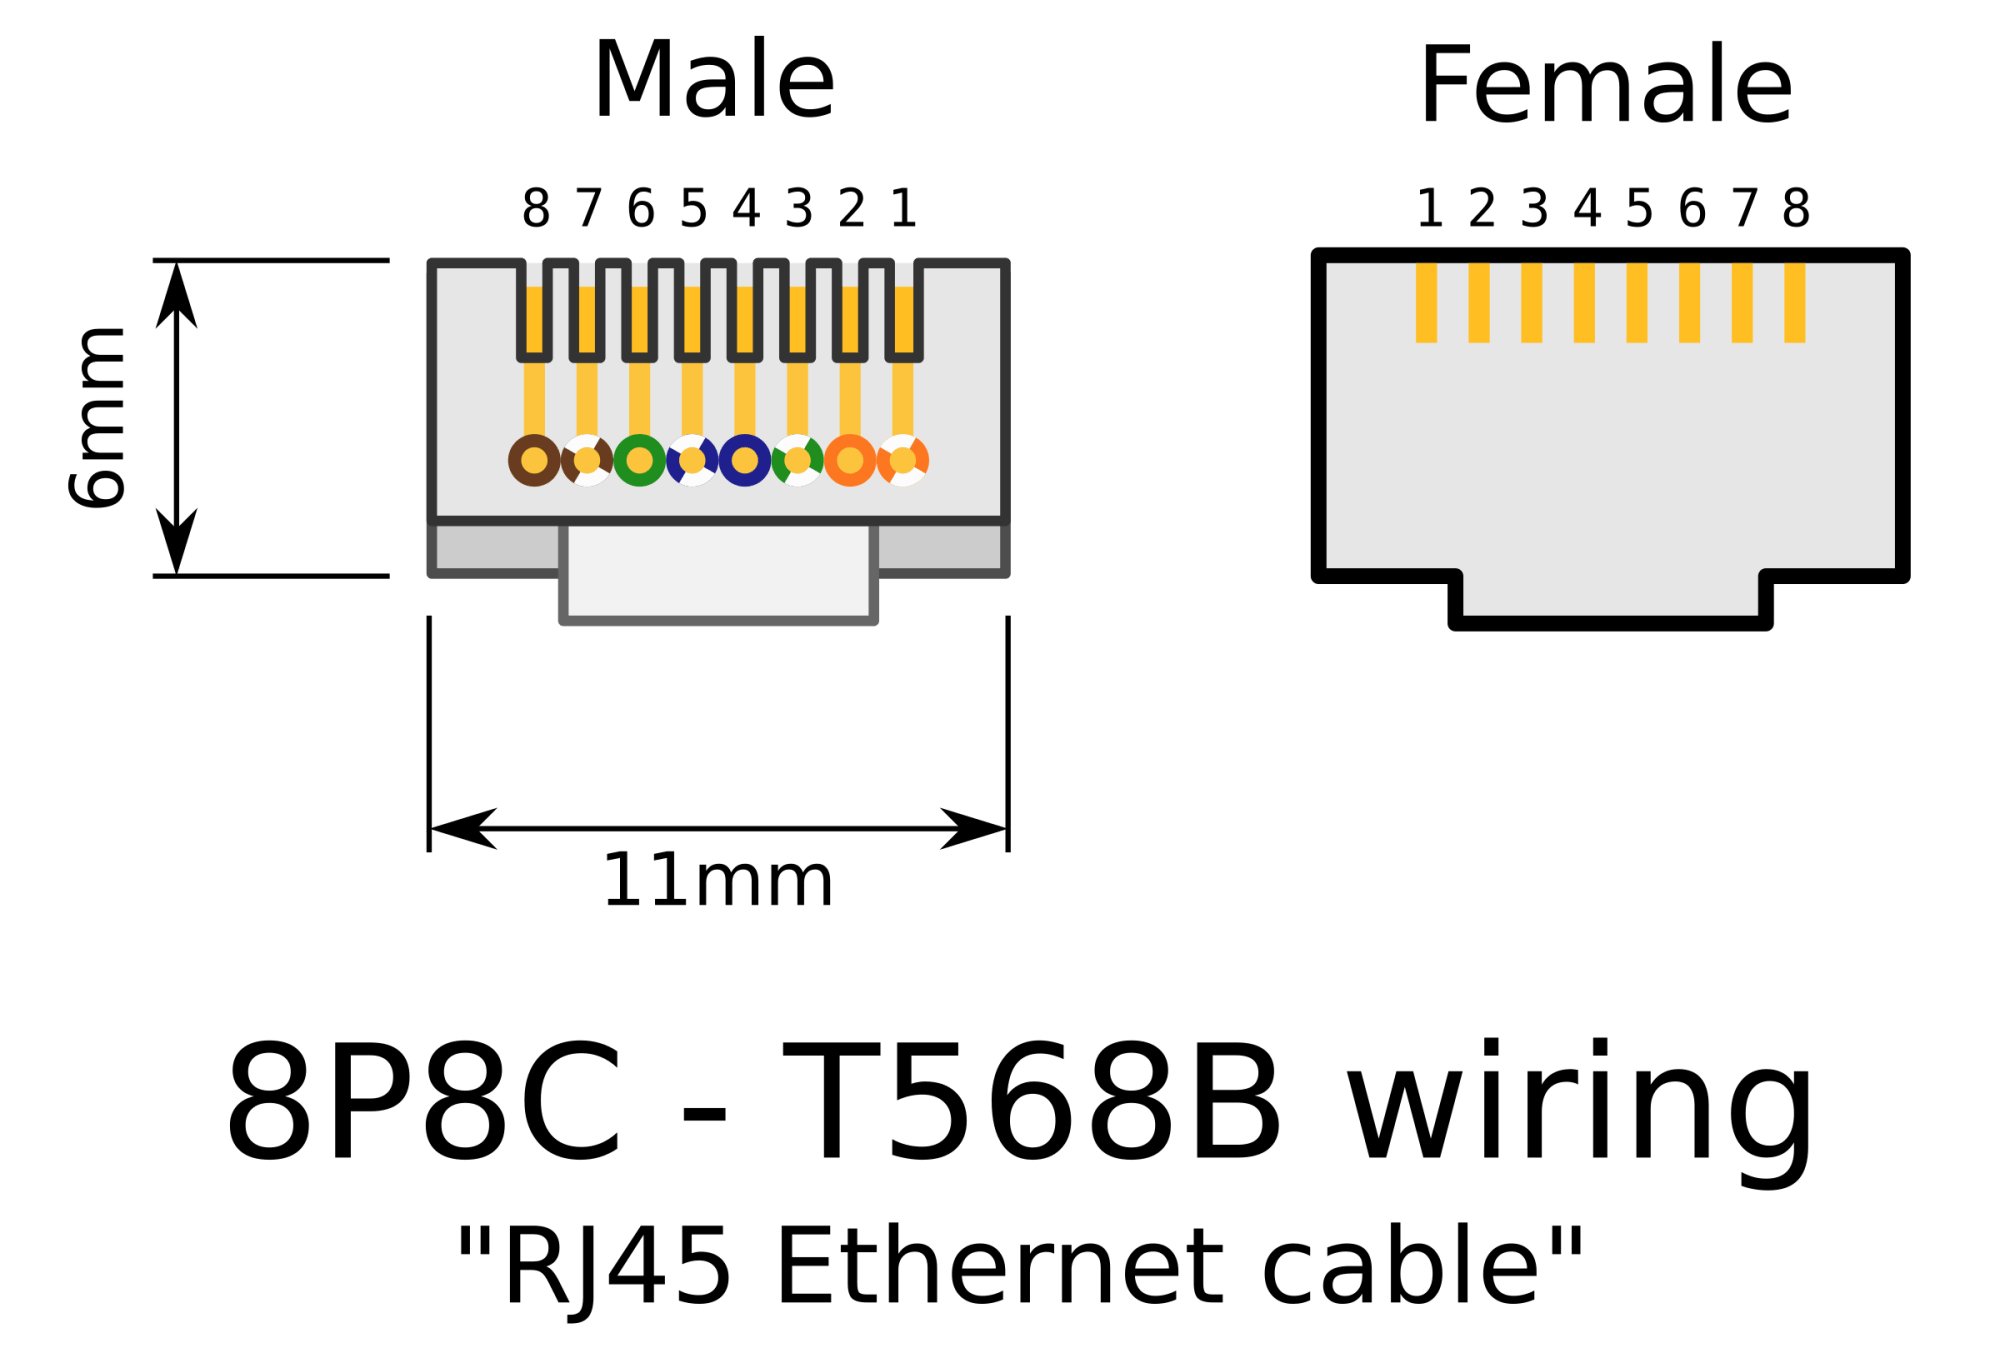 hight resolution of rj45 connector wiring